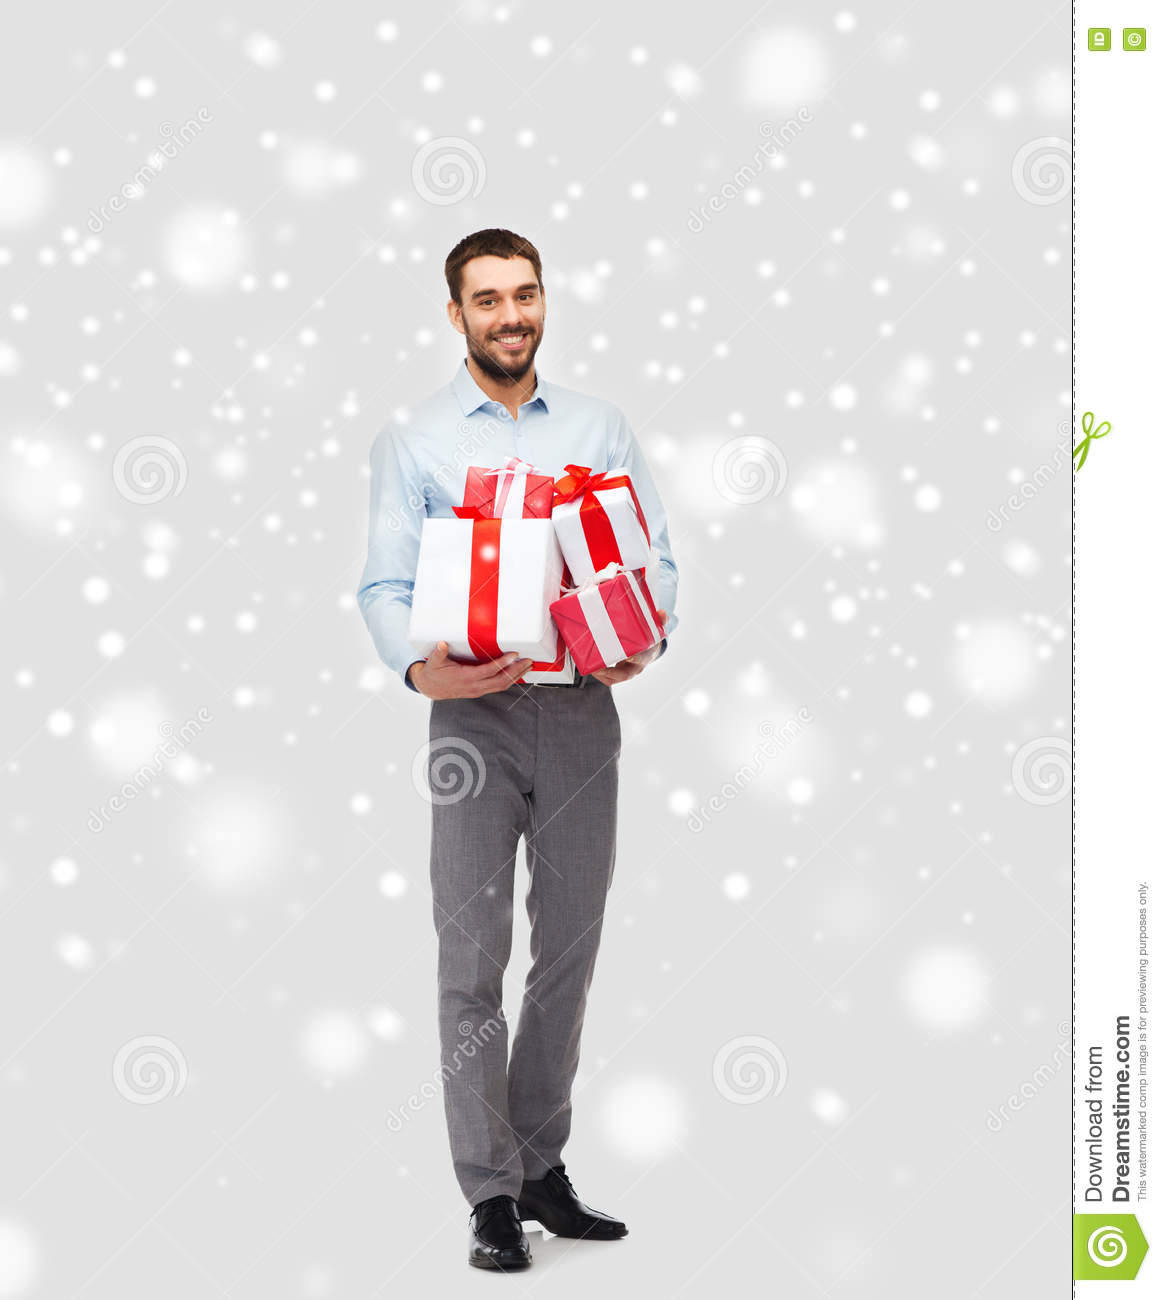 happy young man holding christmas gifts over snow